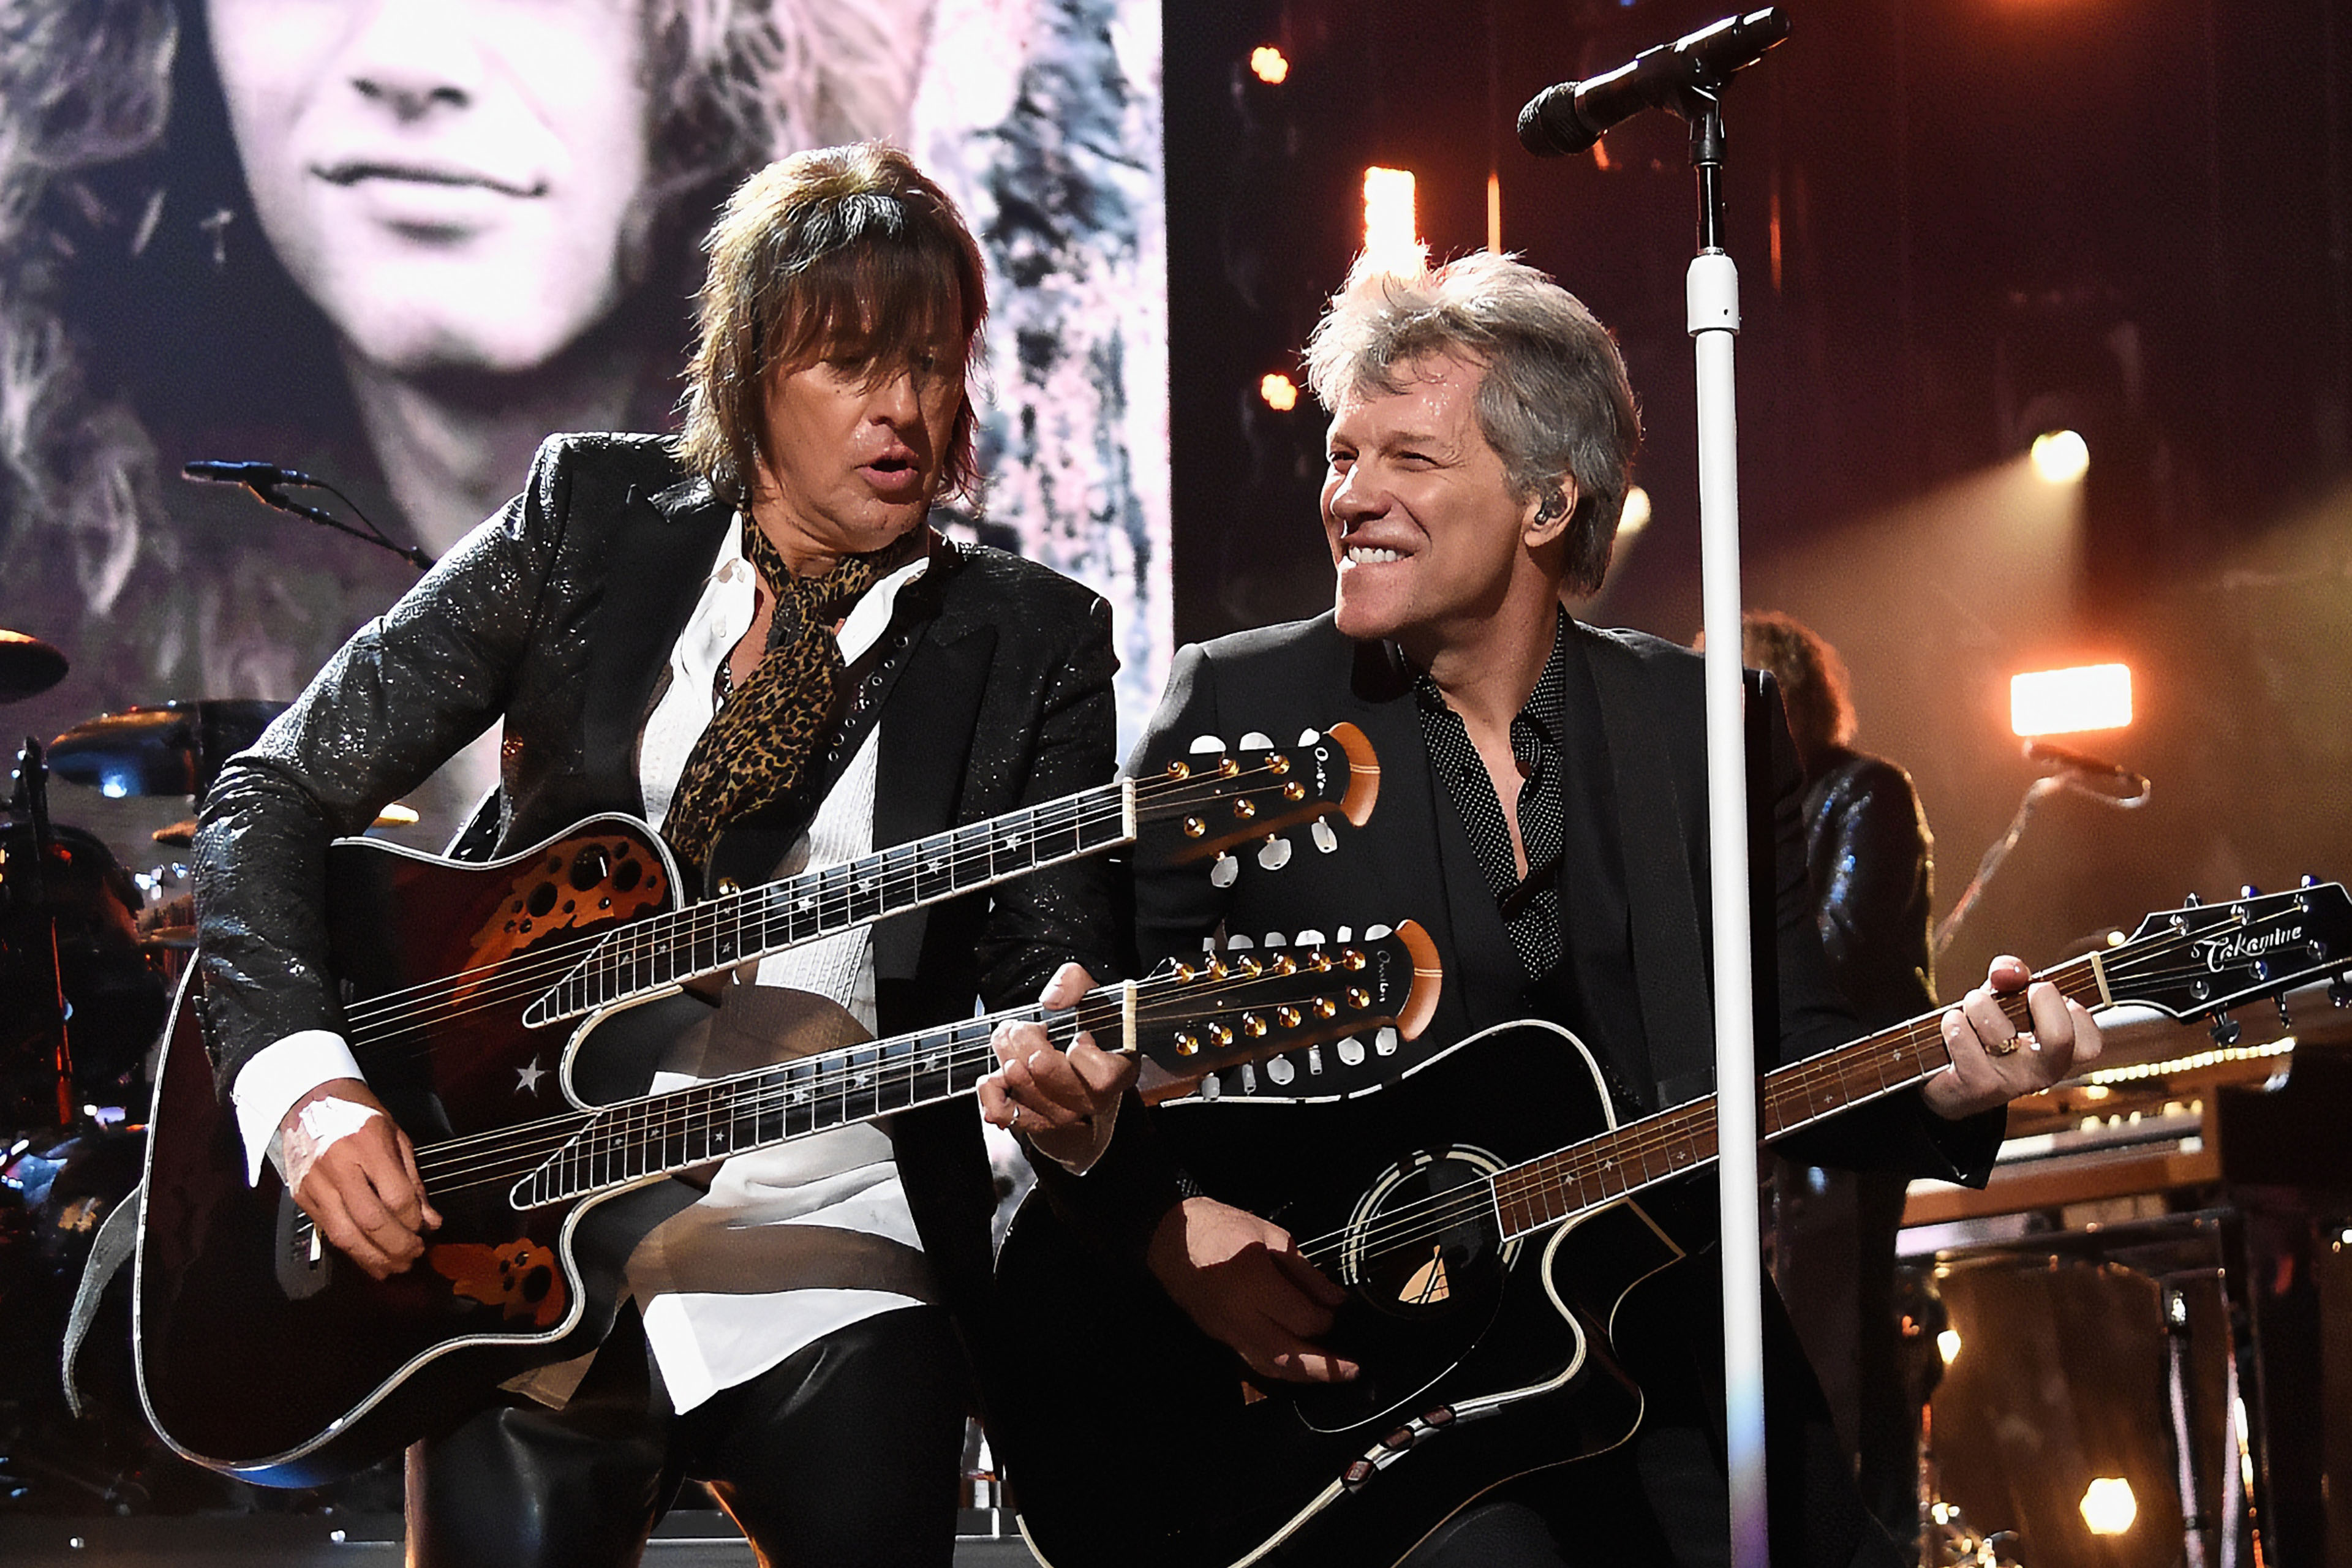 EY - Richie Sambora and Bon Jovi perform 33rd Annual Rock and Roll Hall of Fame induction ceremony